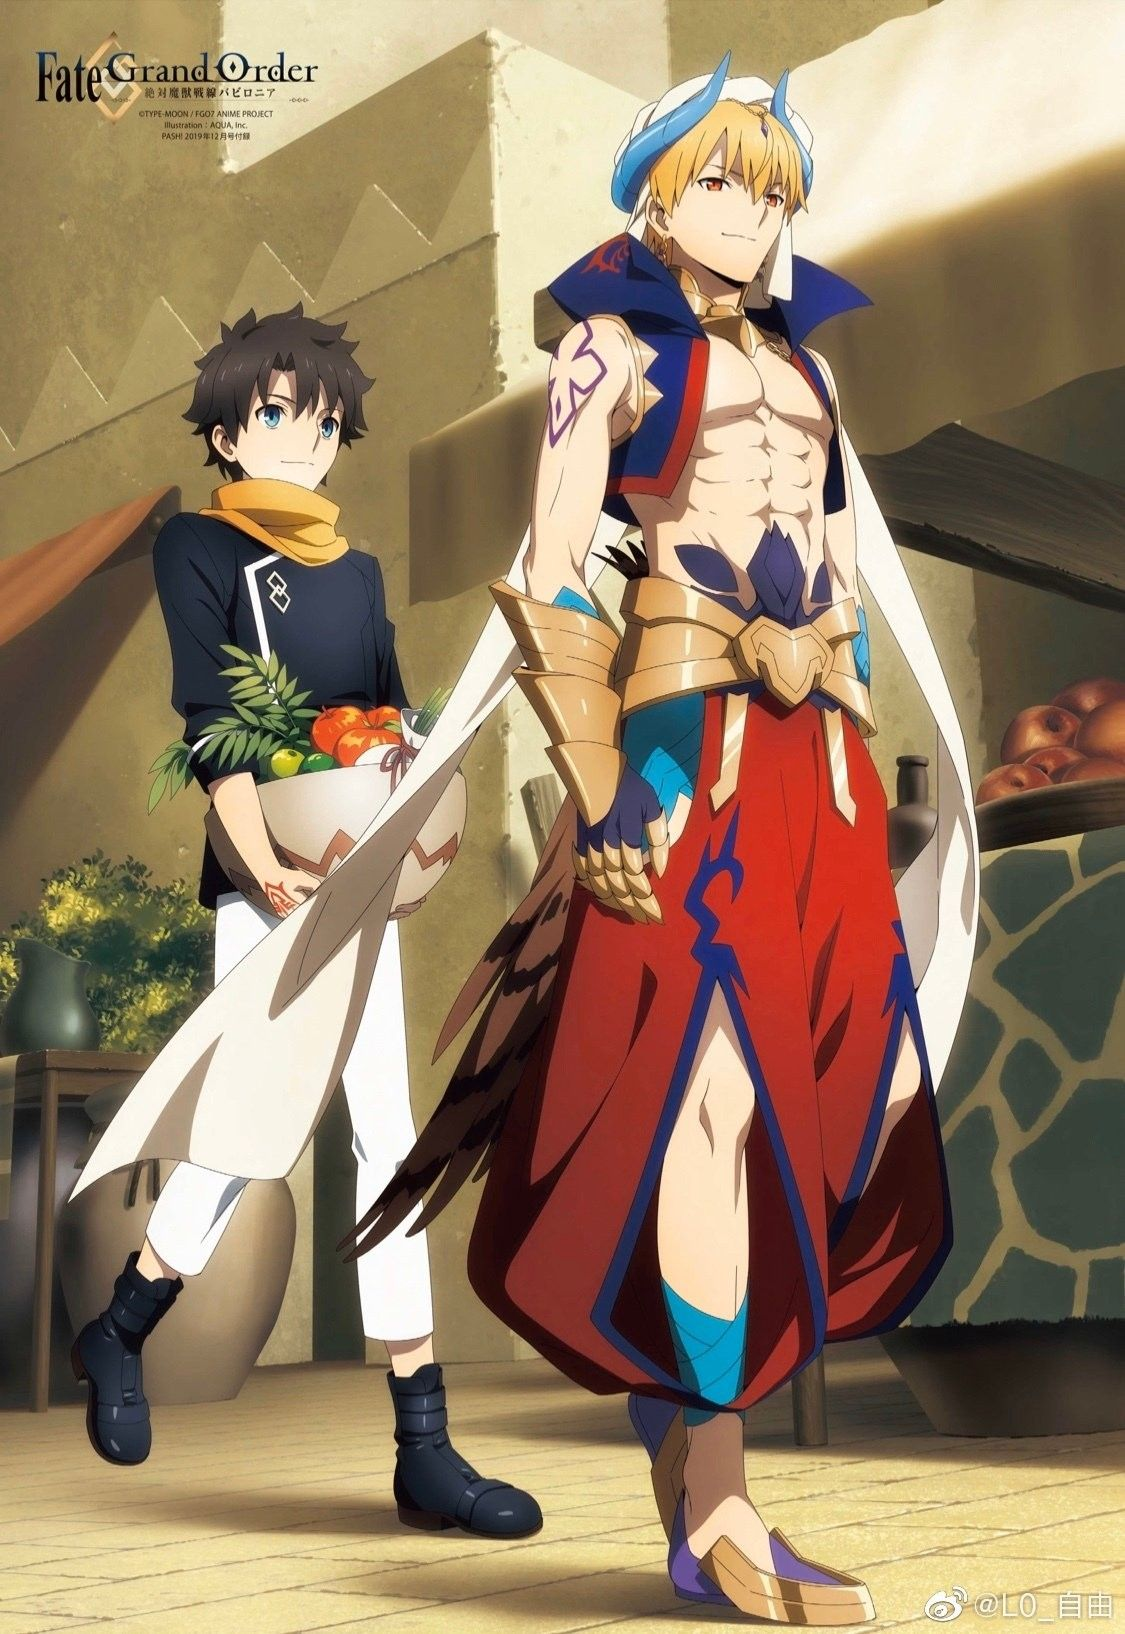 Dudeee The Long Awaited Anime Is Great This Episode Was One Of The Best かわいいアニメガール ギルガメッシュ Fate ギルガメッシュ アニメ